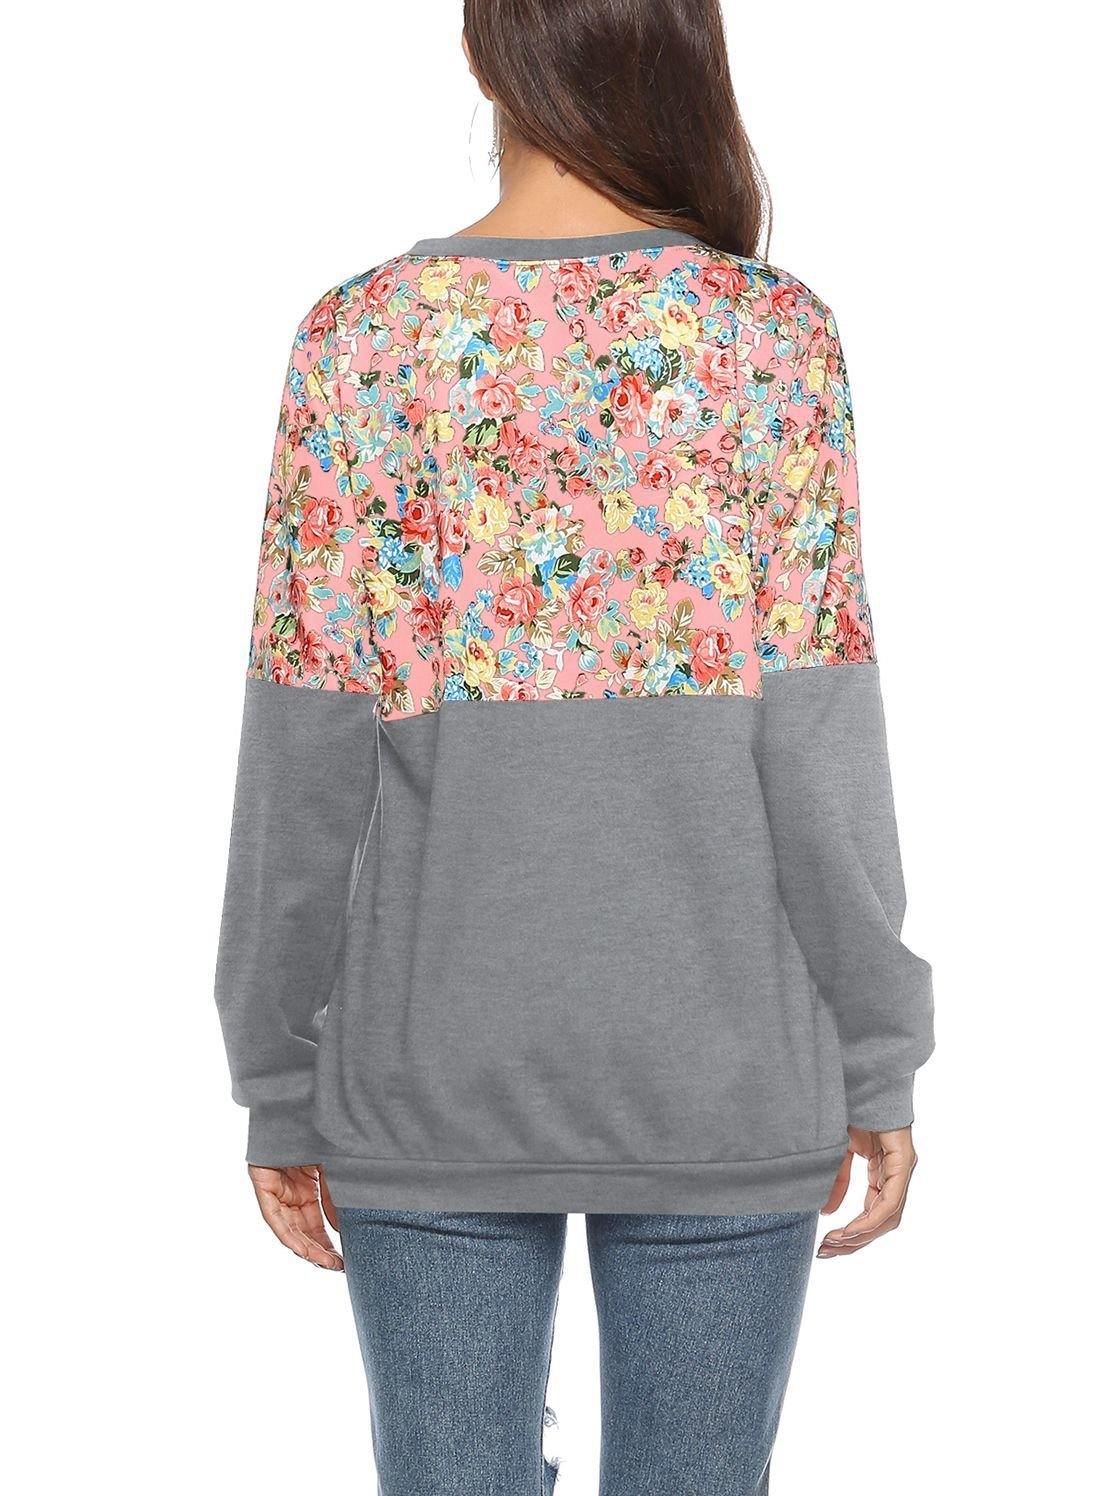 Knit Top with Floral Panel